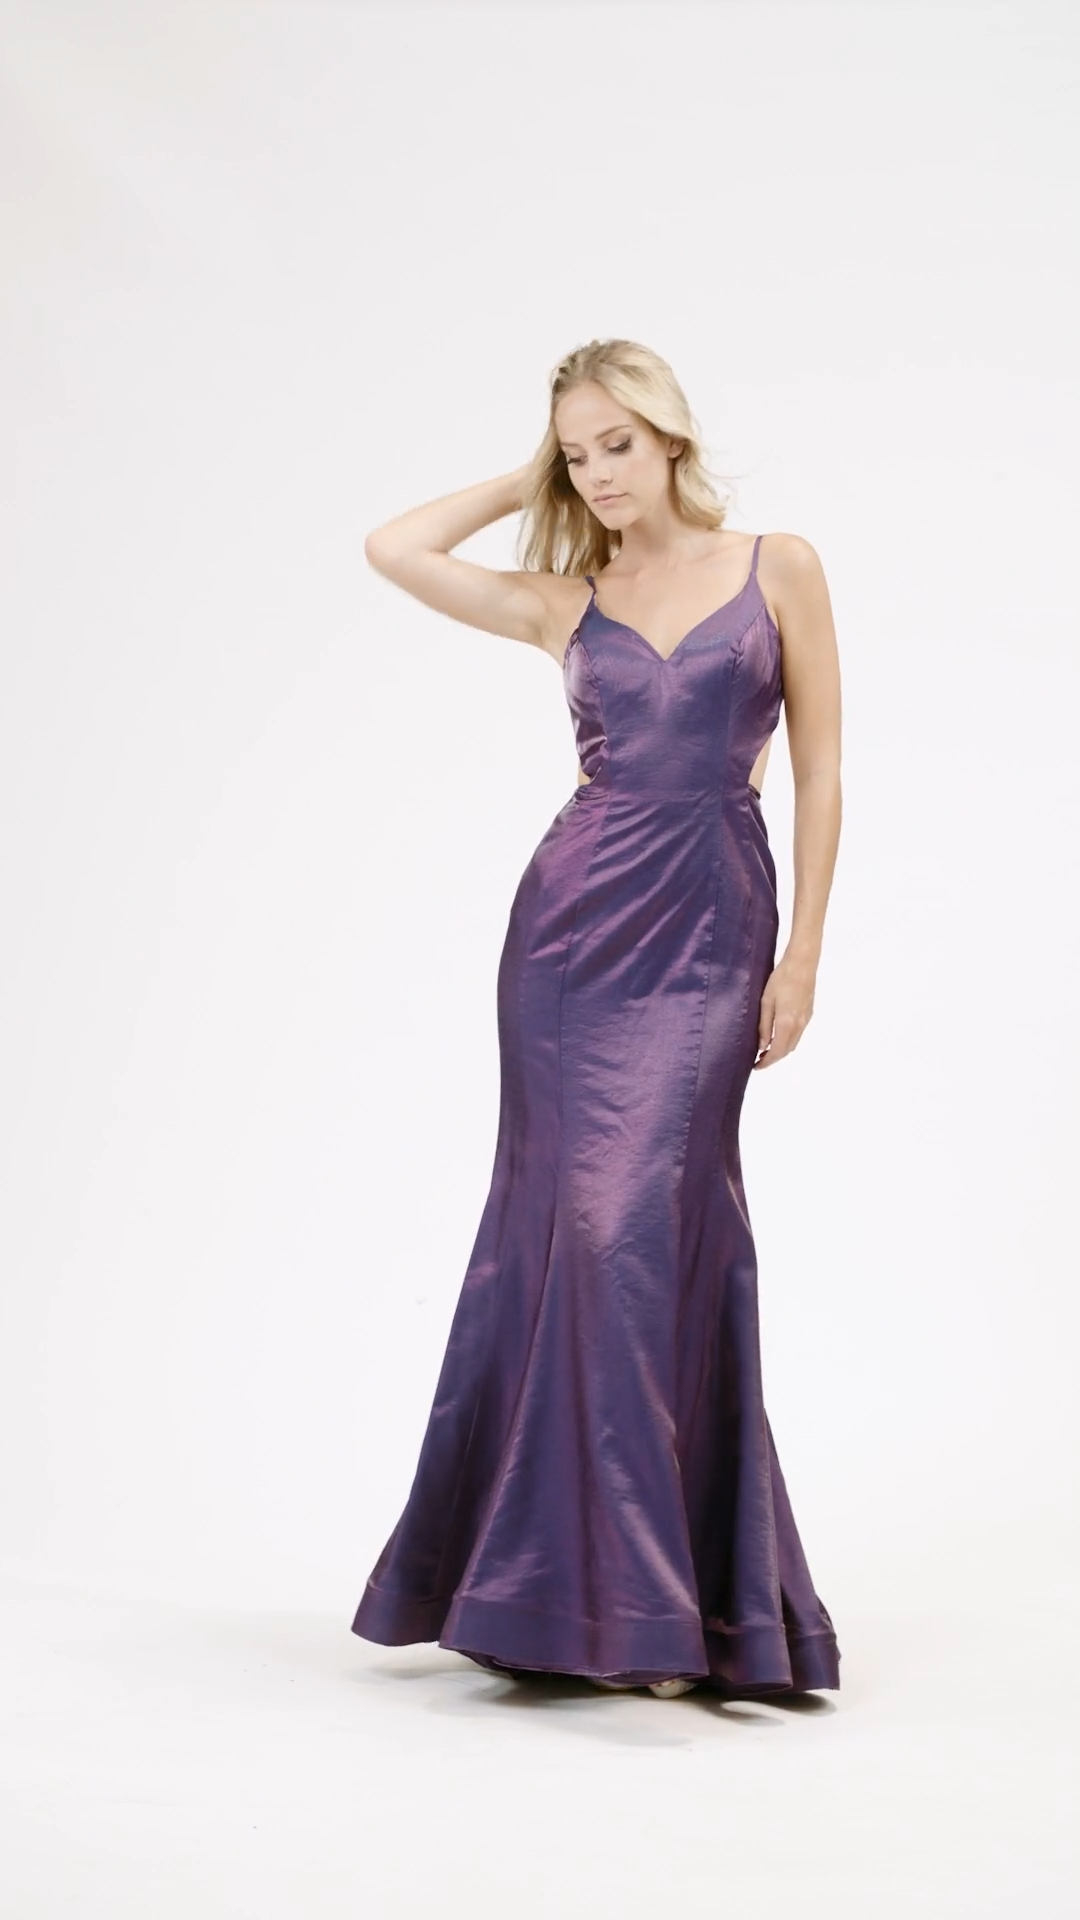 Val Stefani 3920RA curves-hugging shiny satin mermaid gown with sweetheart neckline and strappy open back